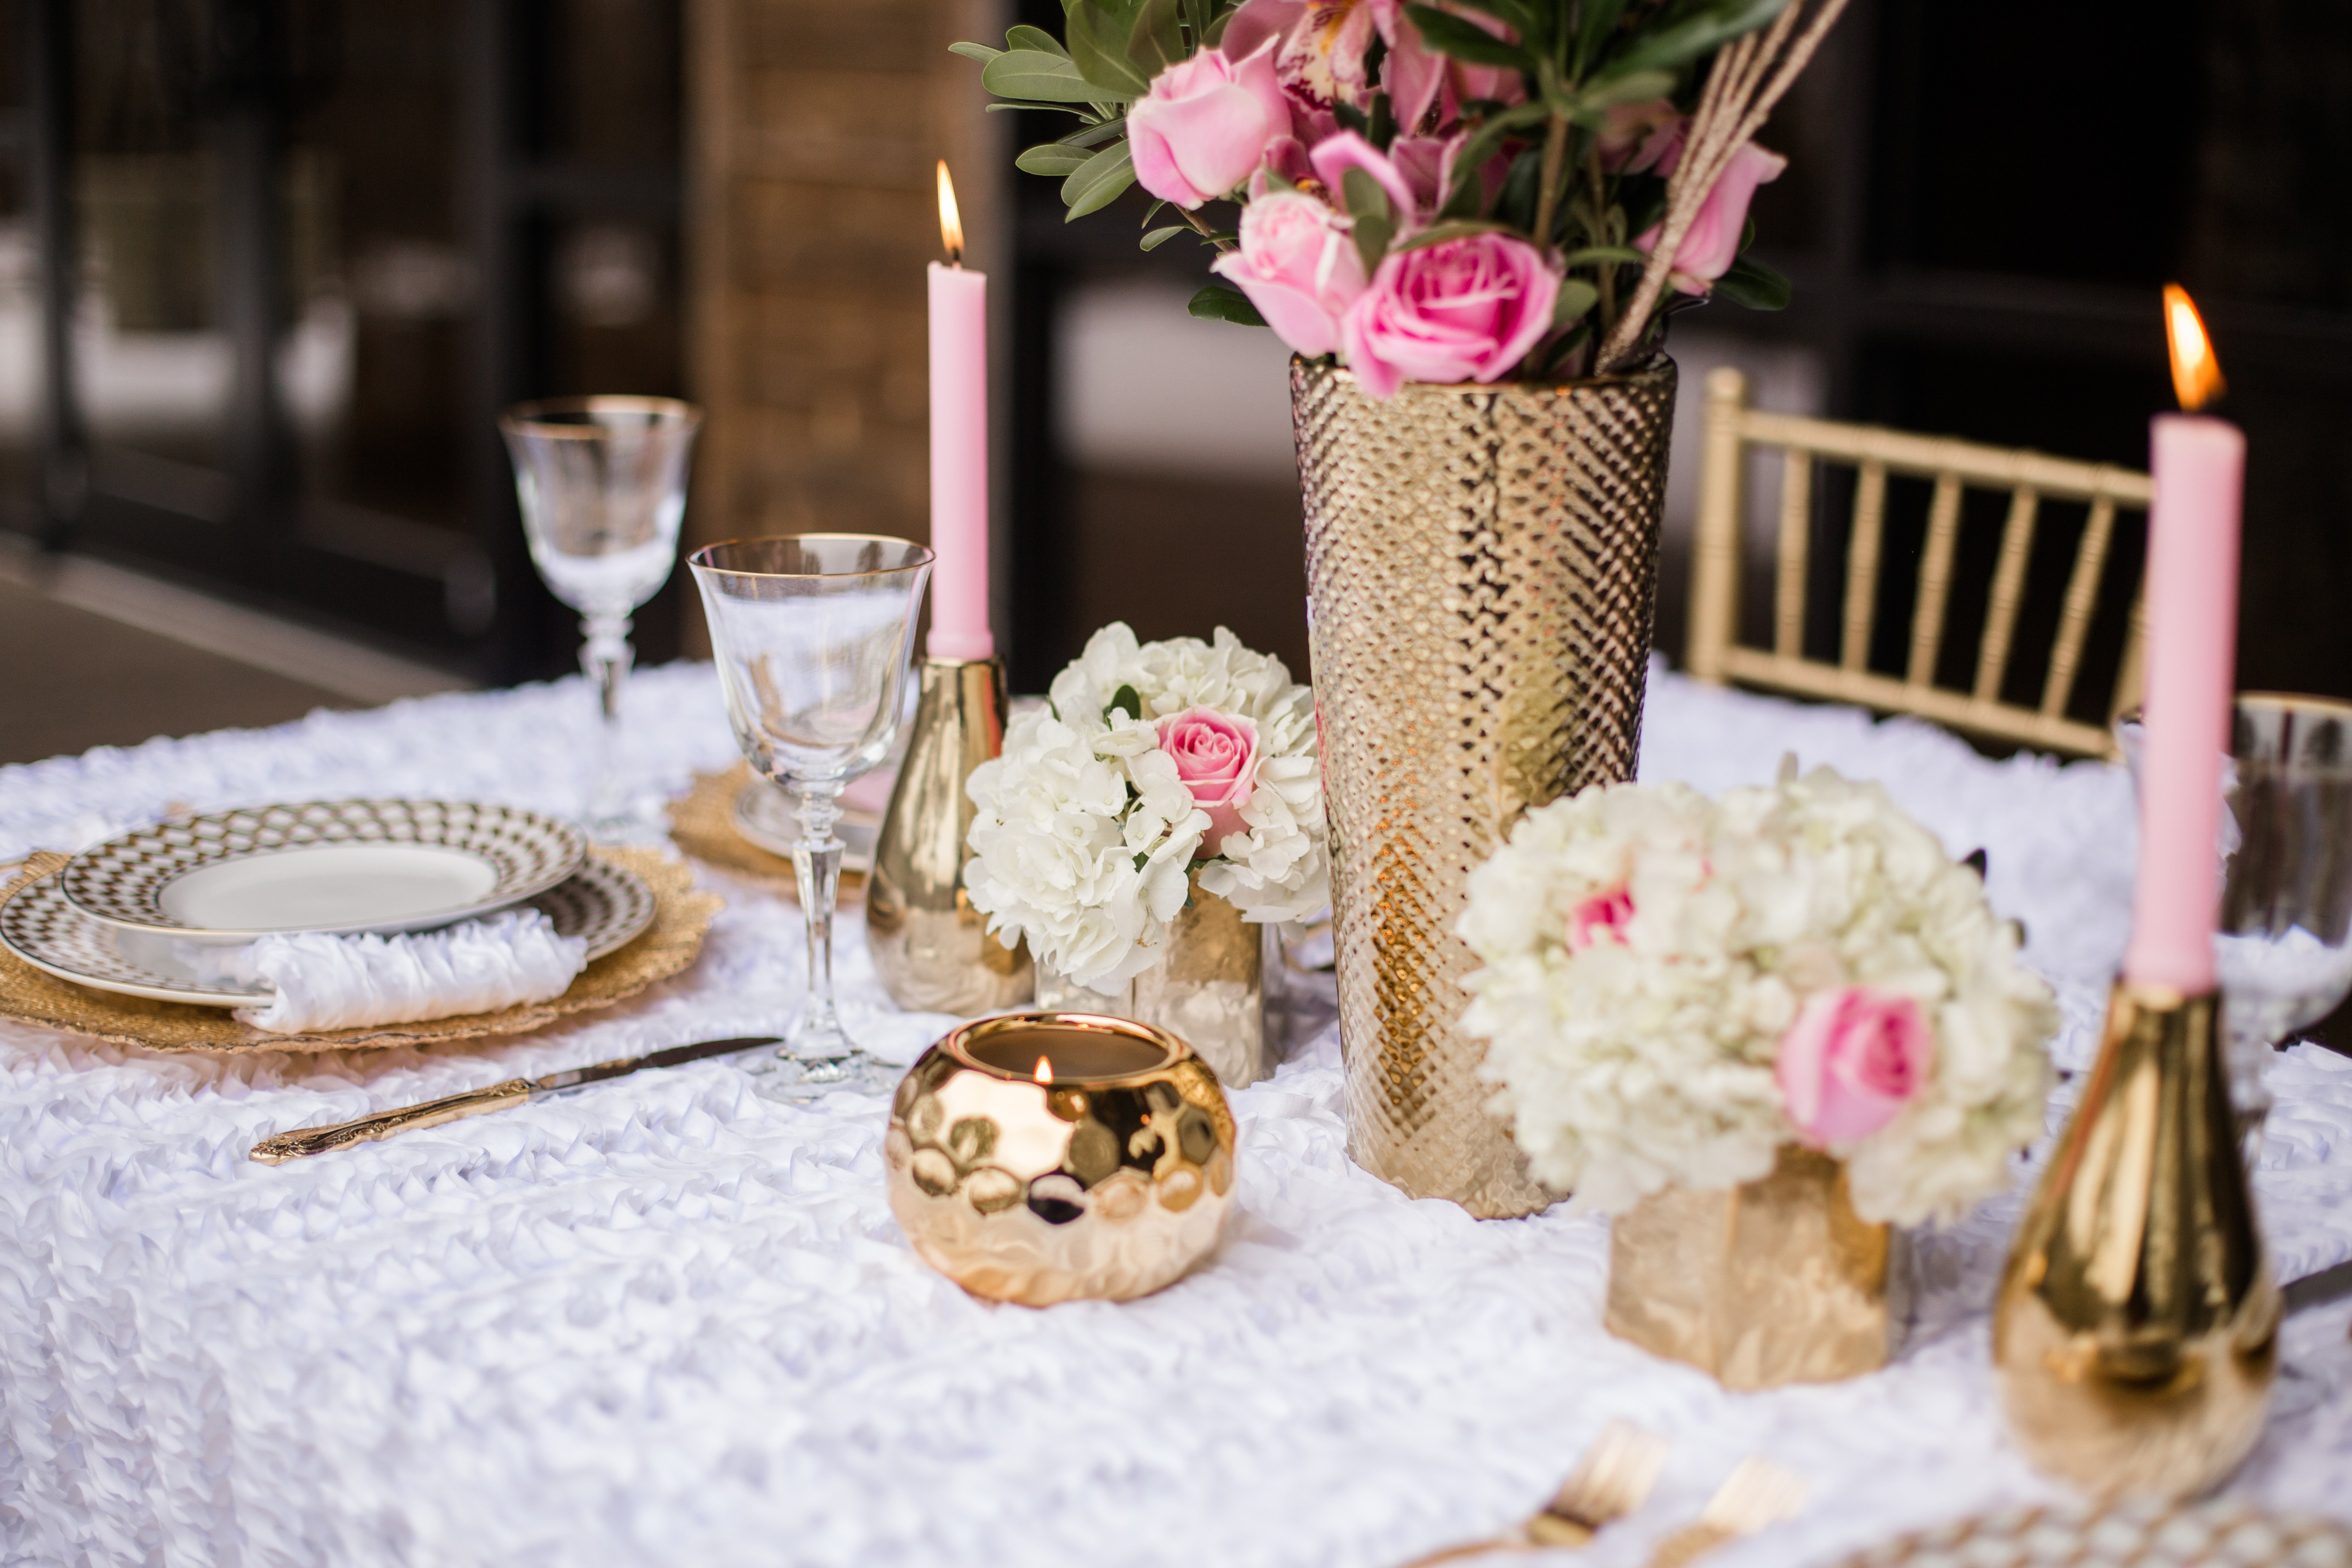 Why Hire LeeHenry Events?